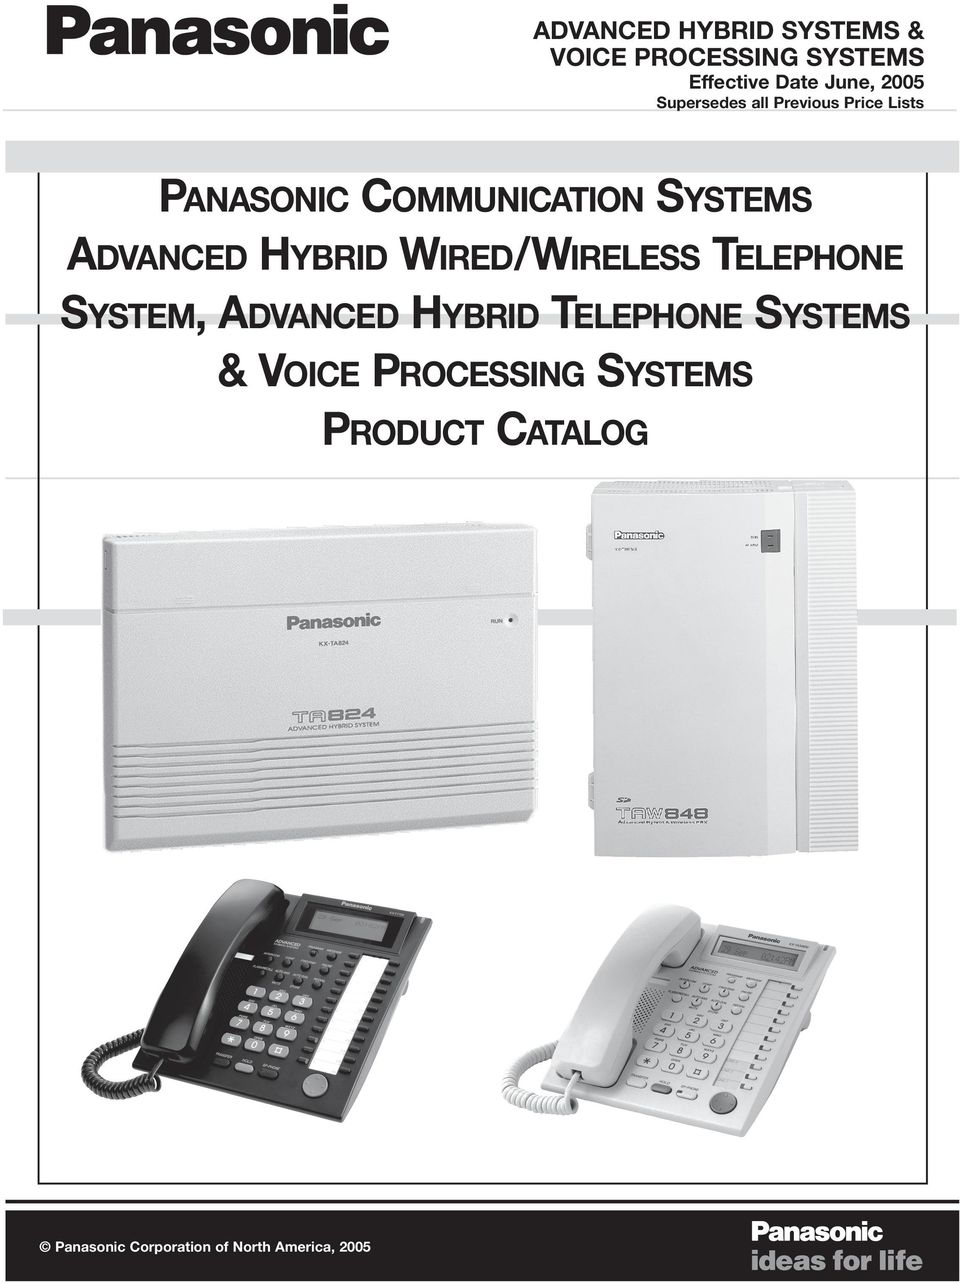 TELEPHONE SYSTEM, ADVANCED HYBRID TELEPHONE SYSTEMS & VOICE PROCESSING SYSTEMS PRODUCT